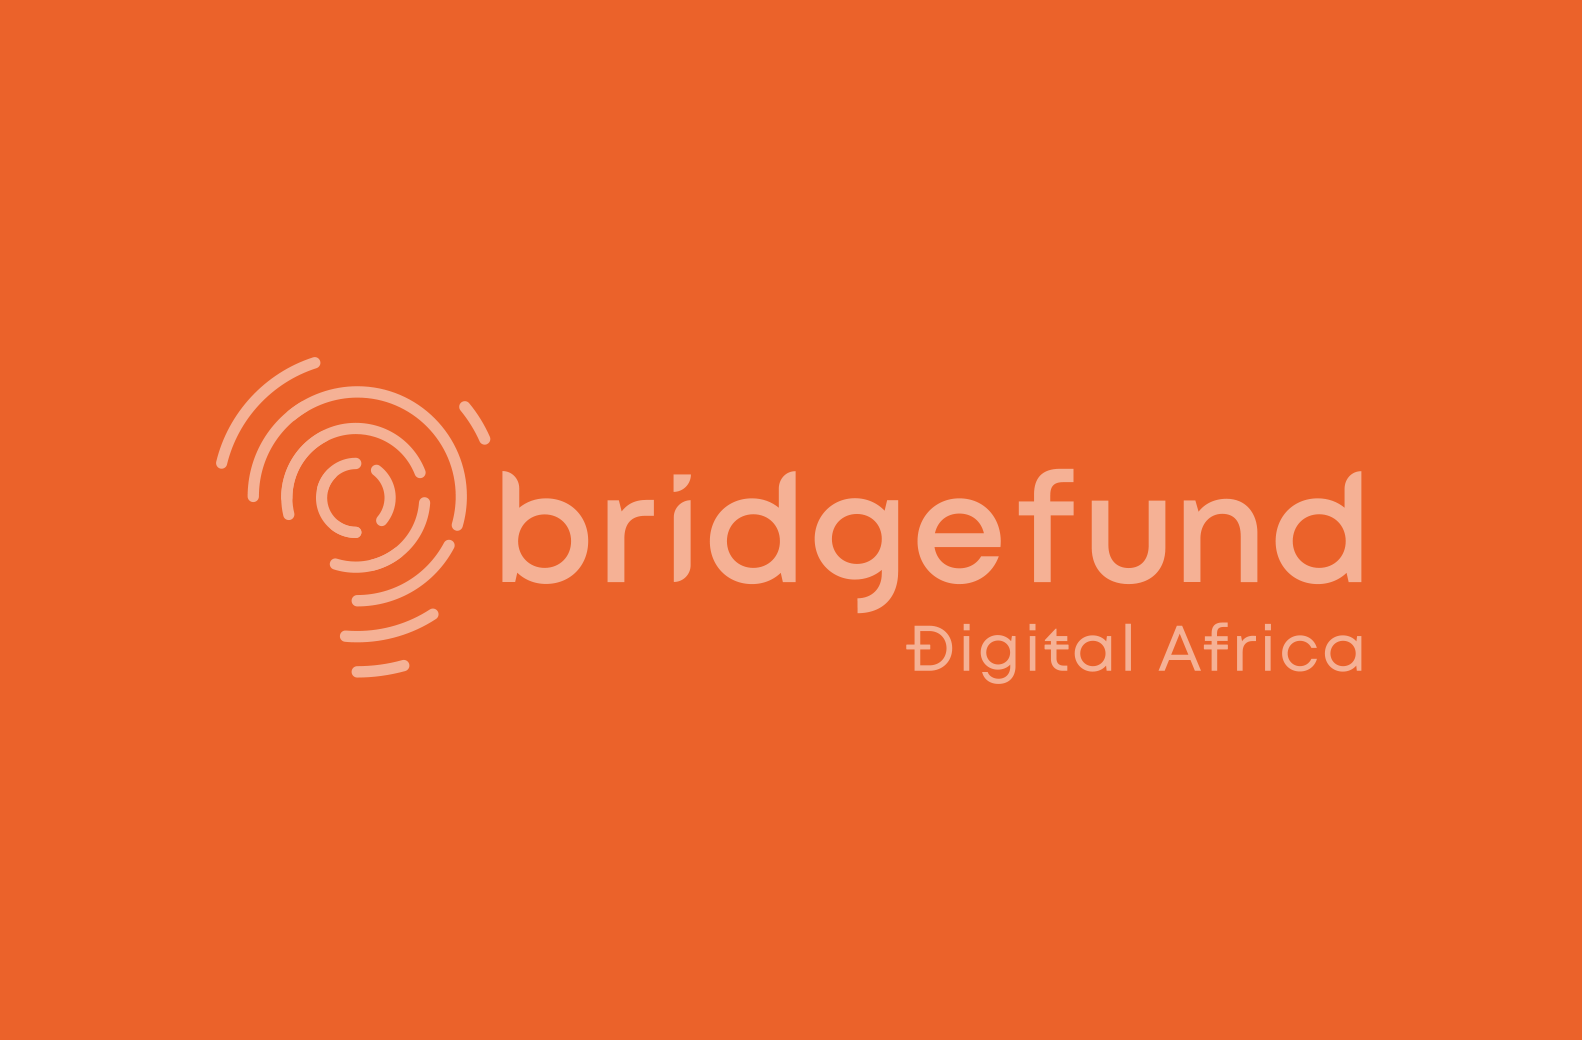 digital africa bridge fund logo